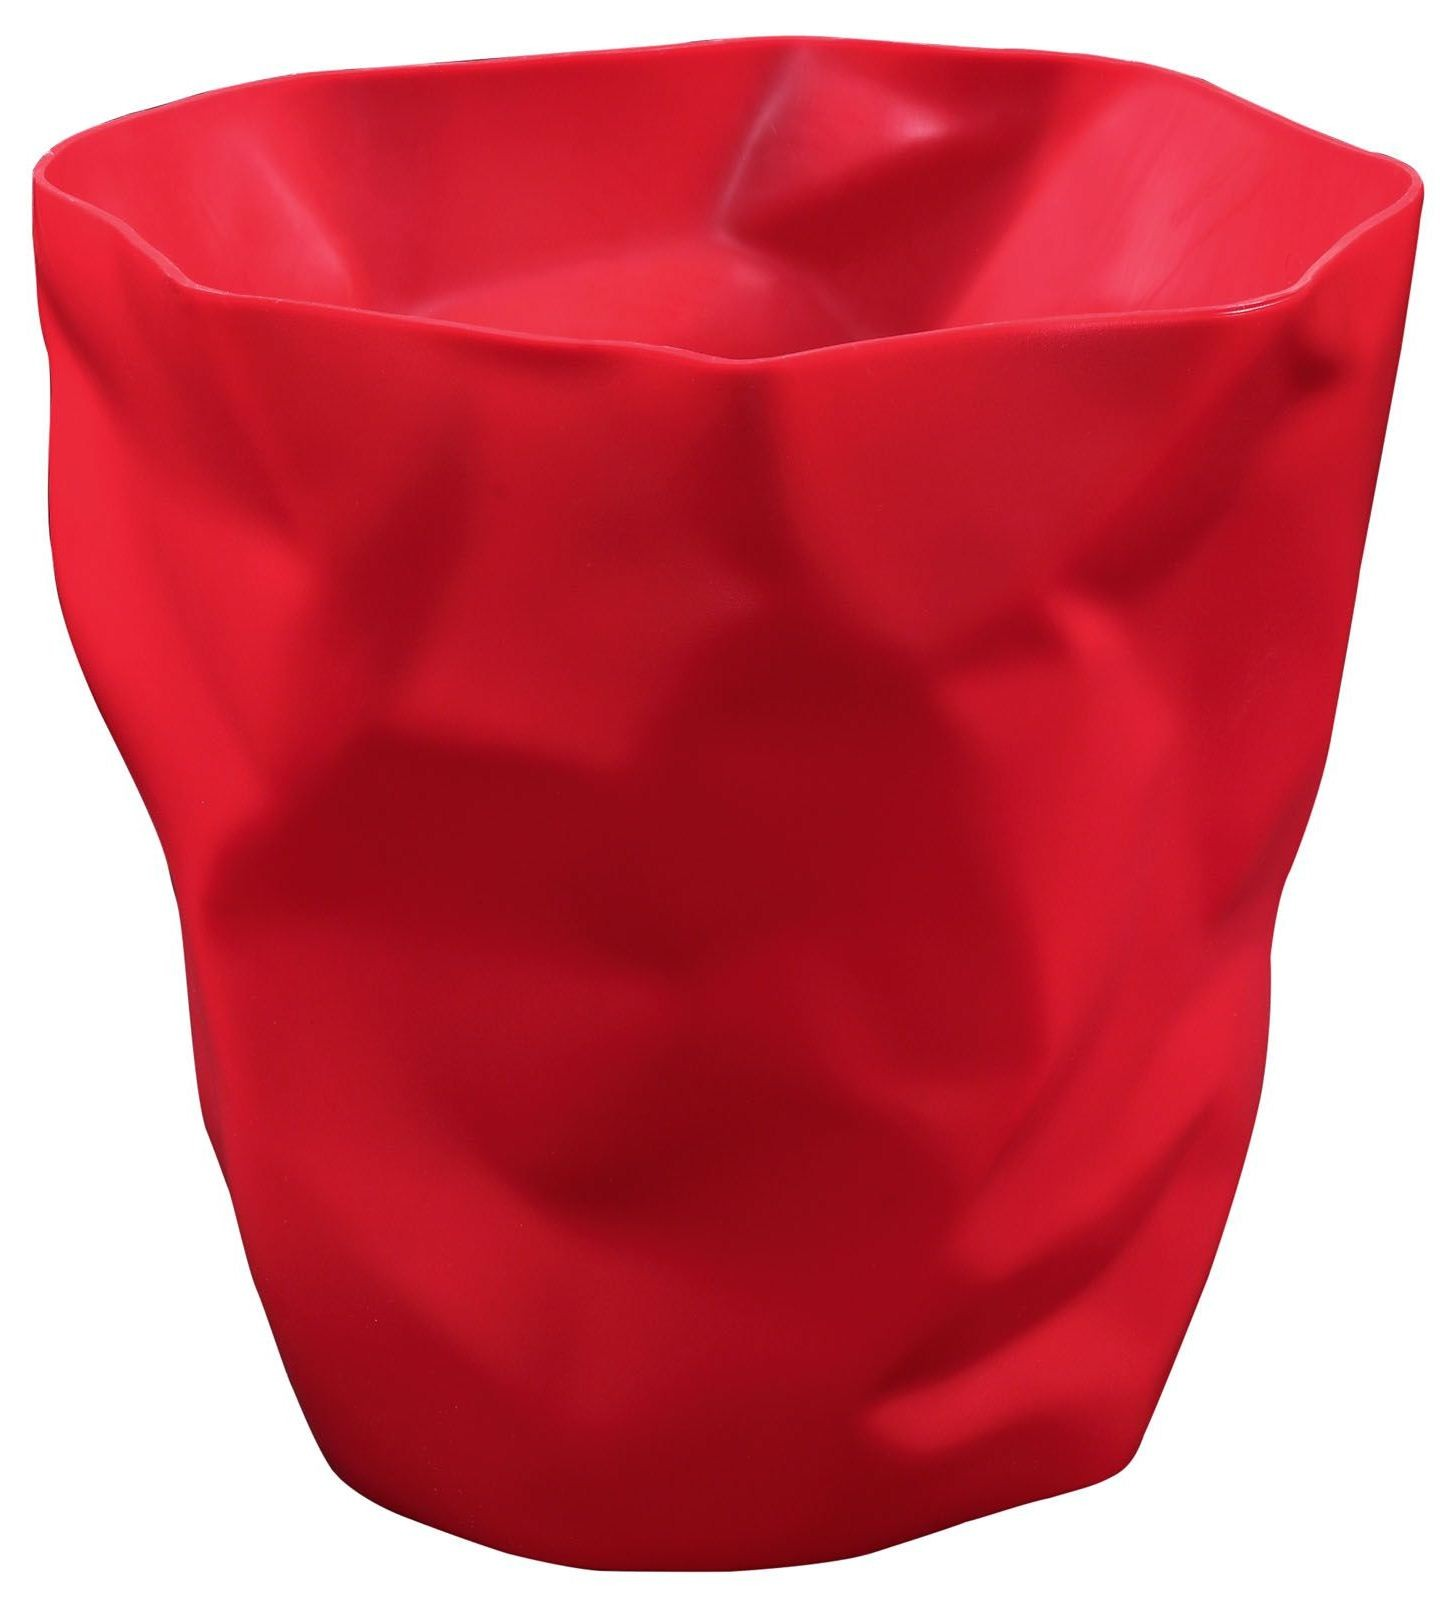 Lava red trash bin from renegade eei 1022 coleman furniture - Rd trash can for sale ...